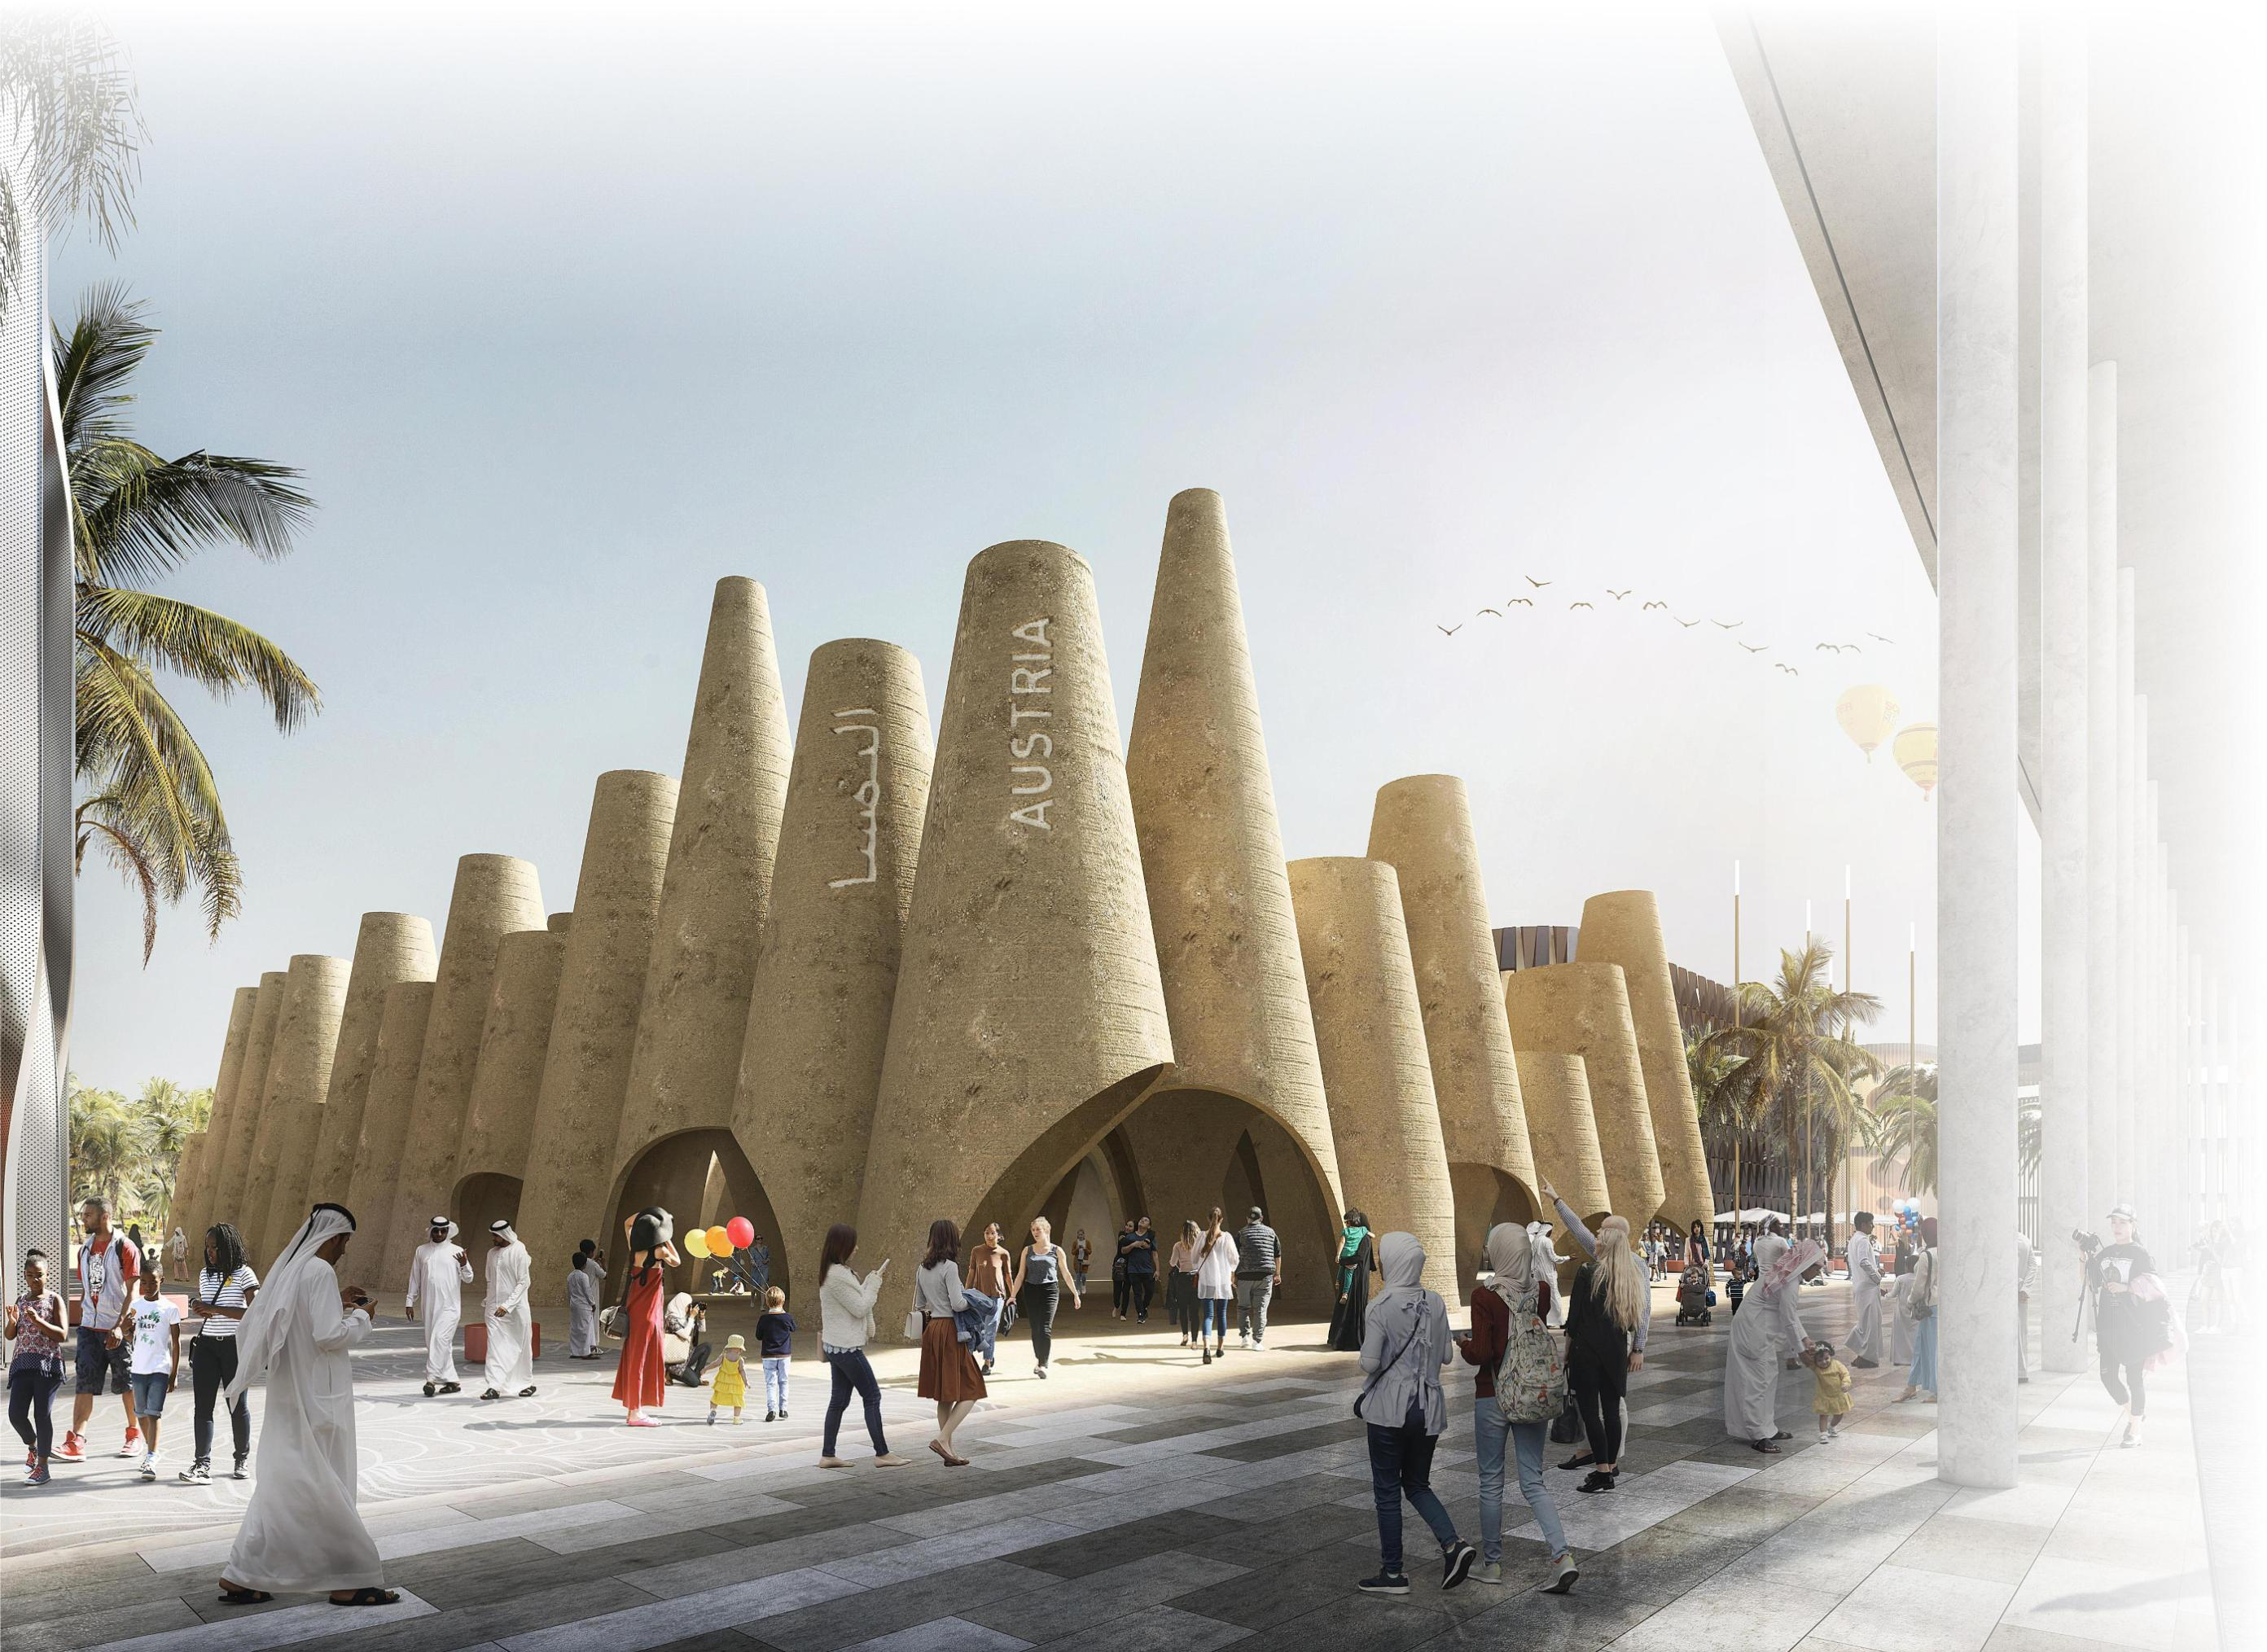 Expo 2020 Dubai to bring sustainable architecture home - CNN